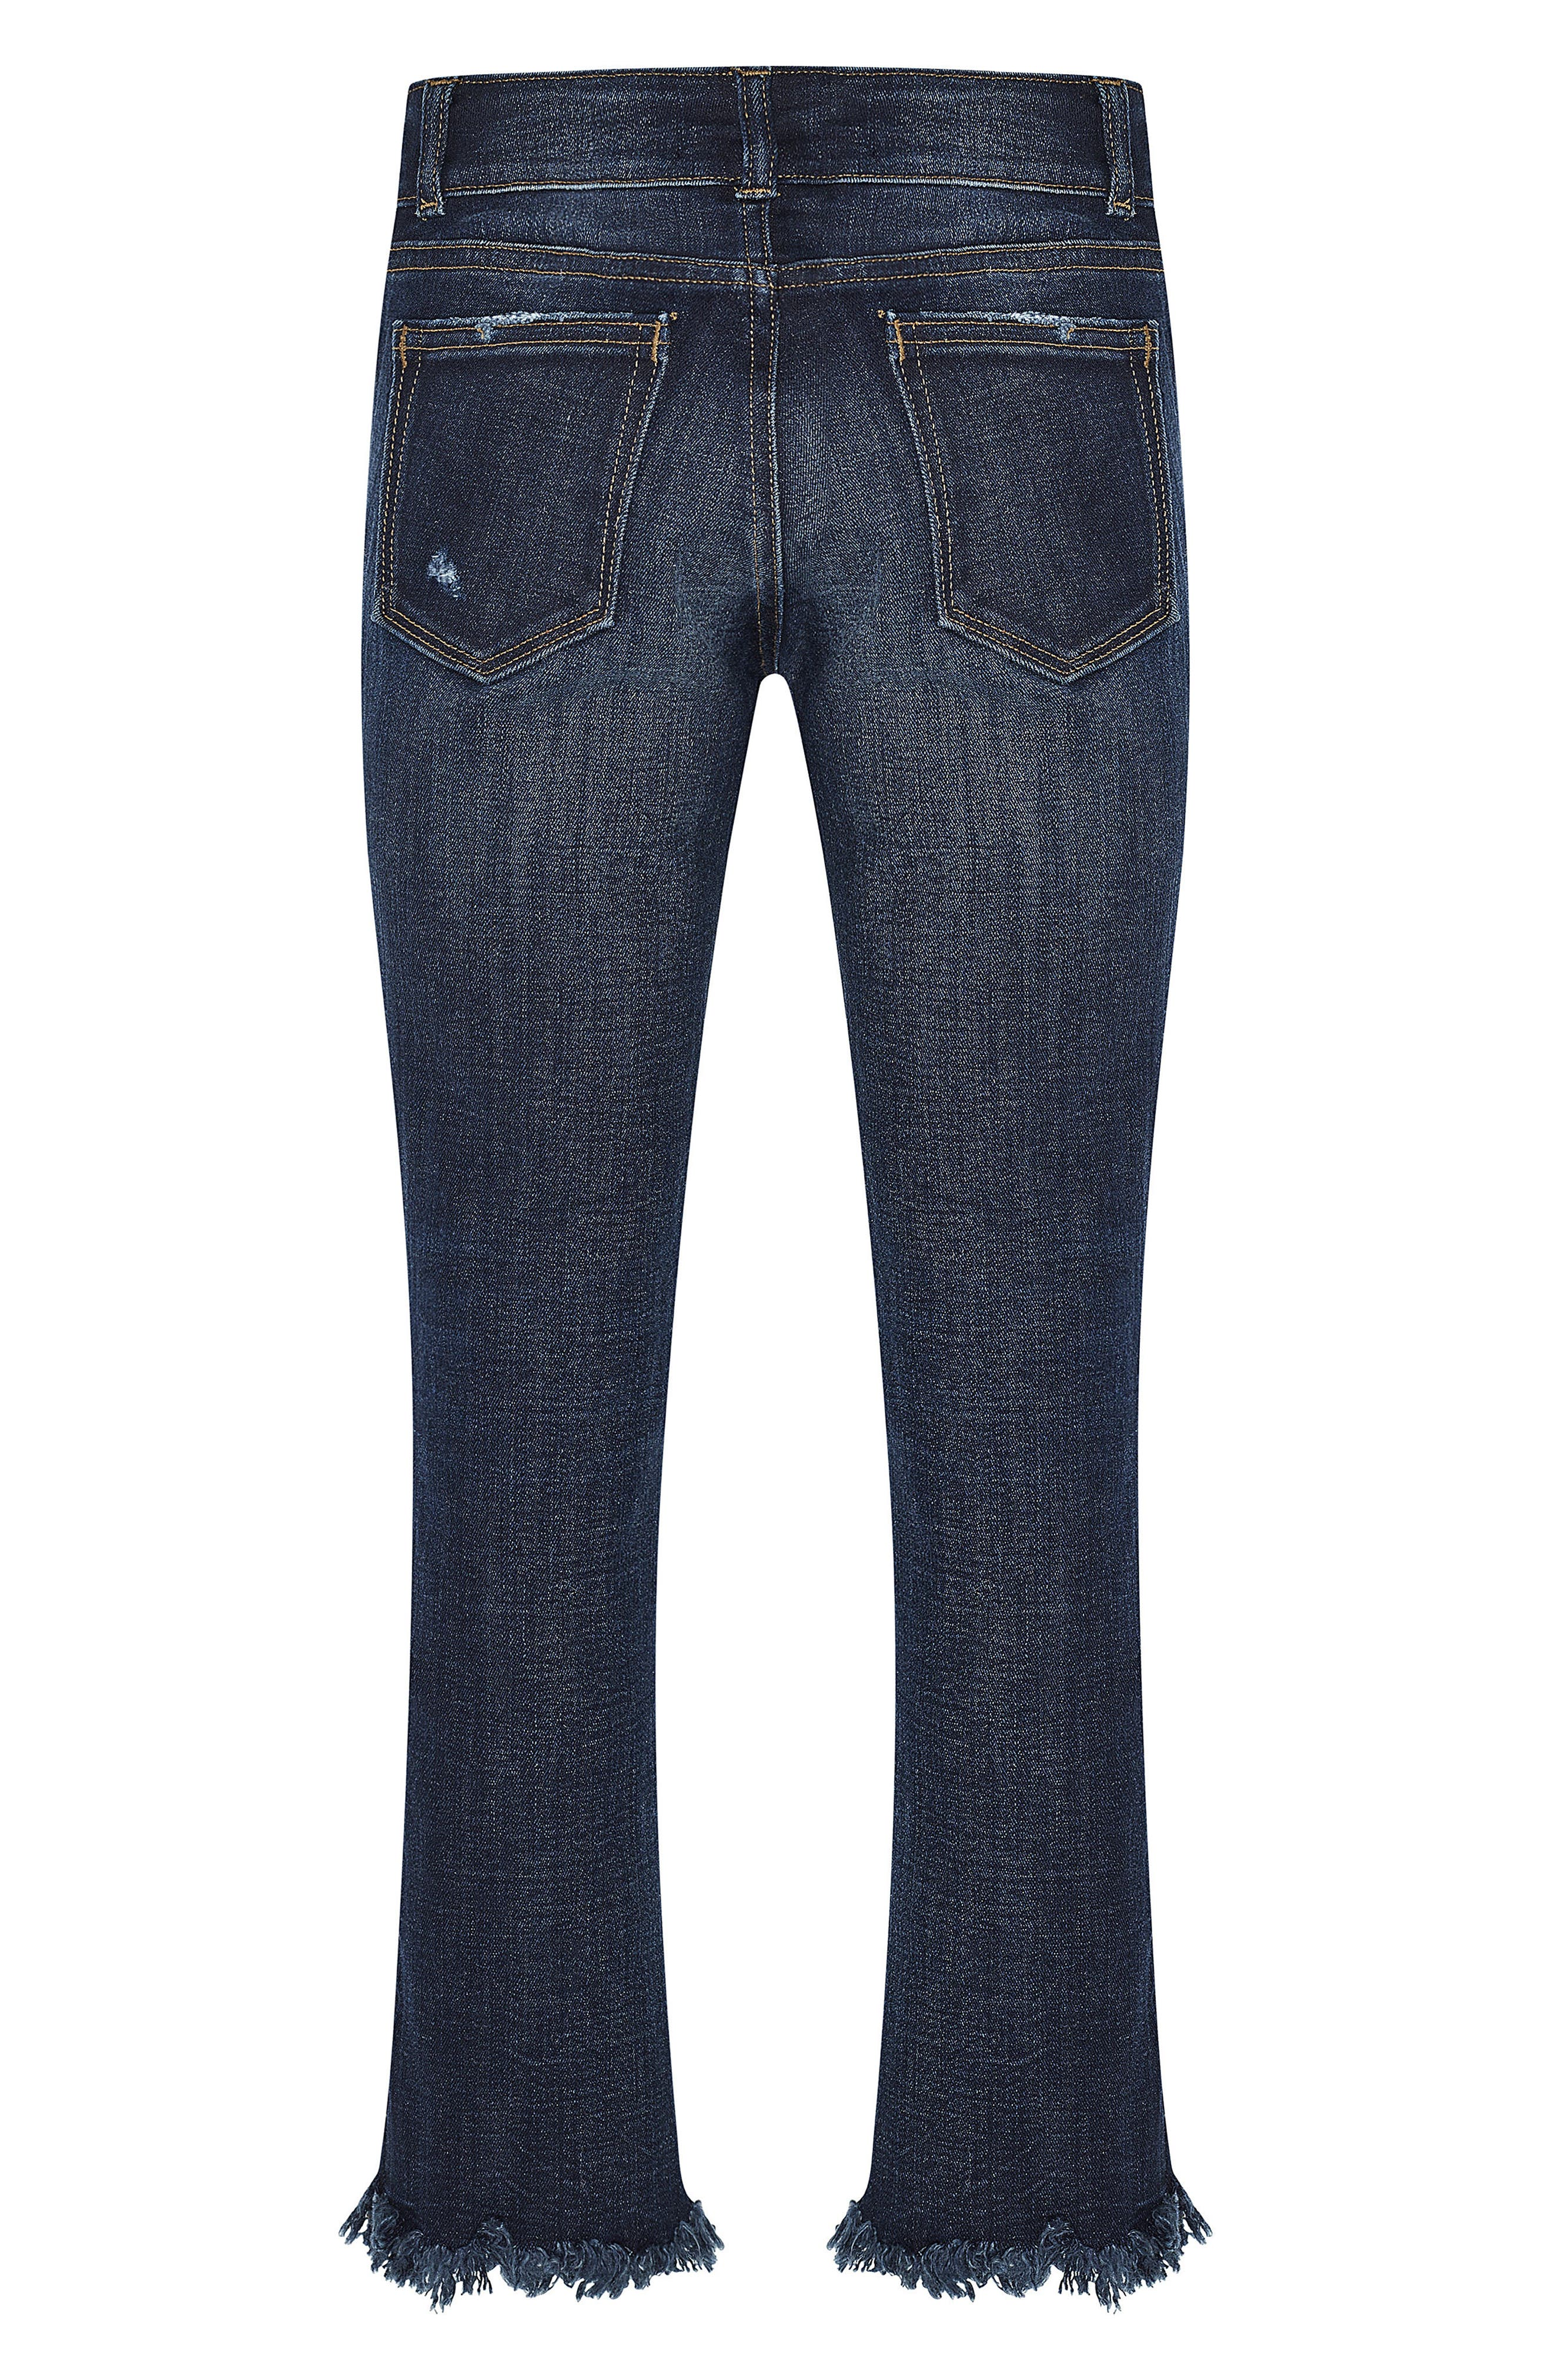 DL1916 Chloe Distressed Skinny Jeans,                             Main thumbnail 1, color,                             405